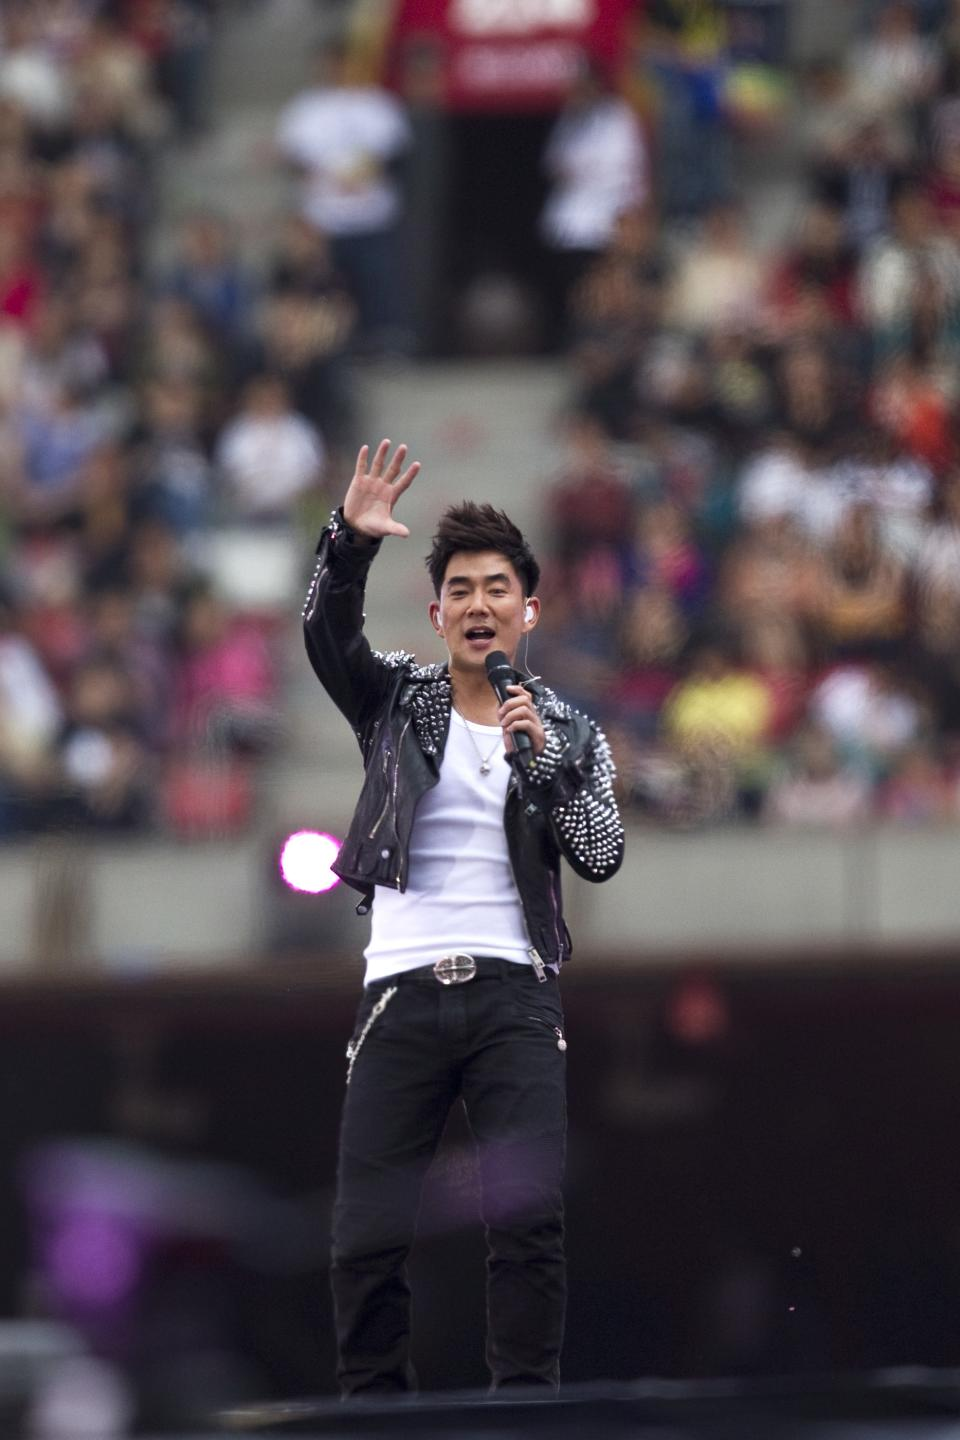 Taiwanese actor and singer Richie Jen performs during the Rock Records' 30th Anniversary Beijing Concert in China's National Stadium, also known as the bird's nest, in Beijing, China, Sunday, May 1, 2011. (AP Photo/Alexander F. Yuan)